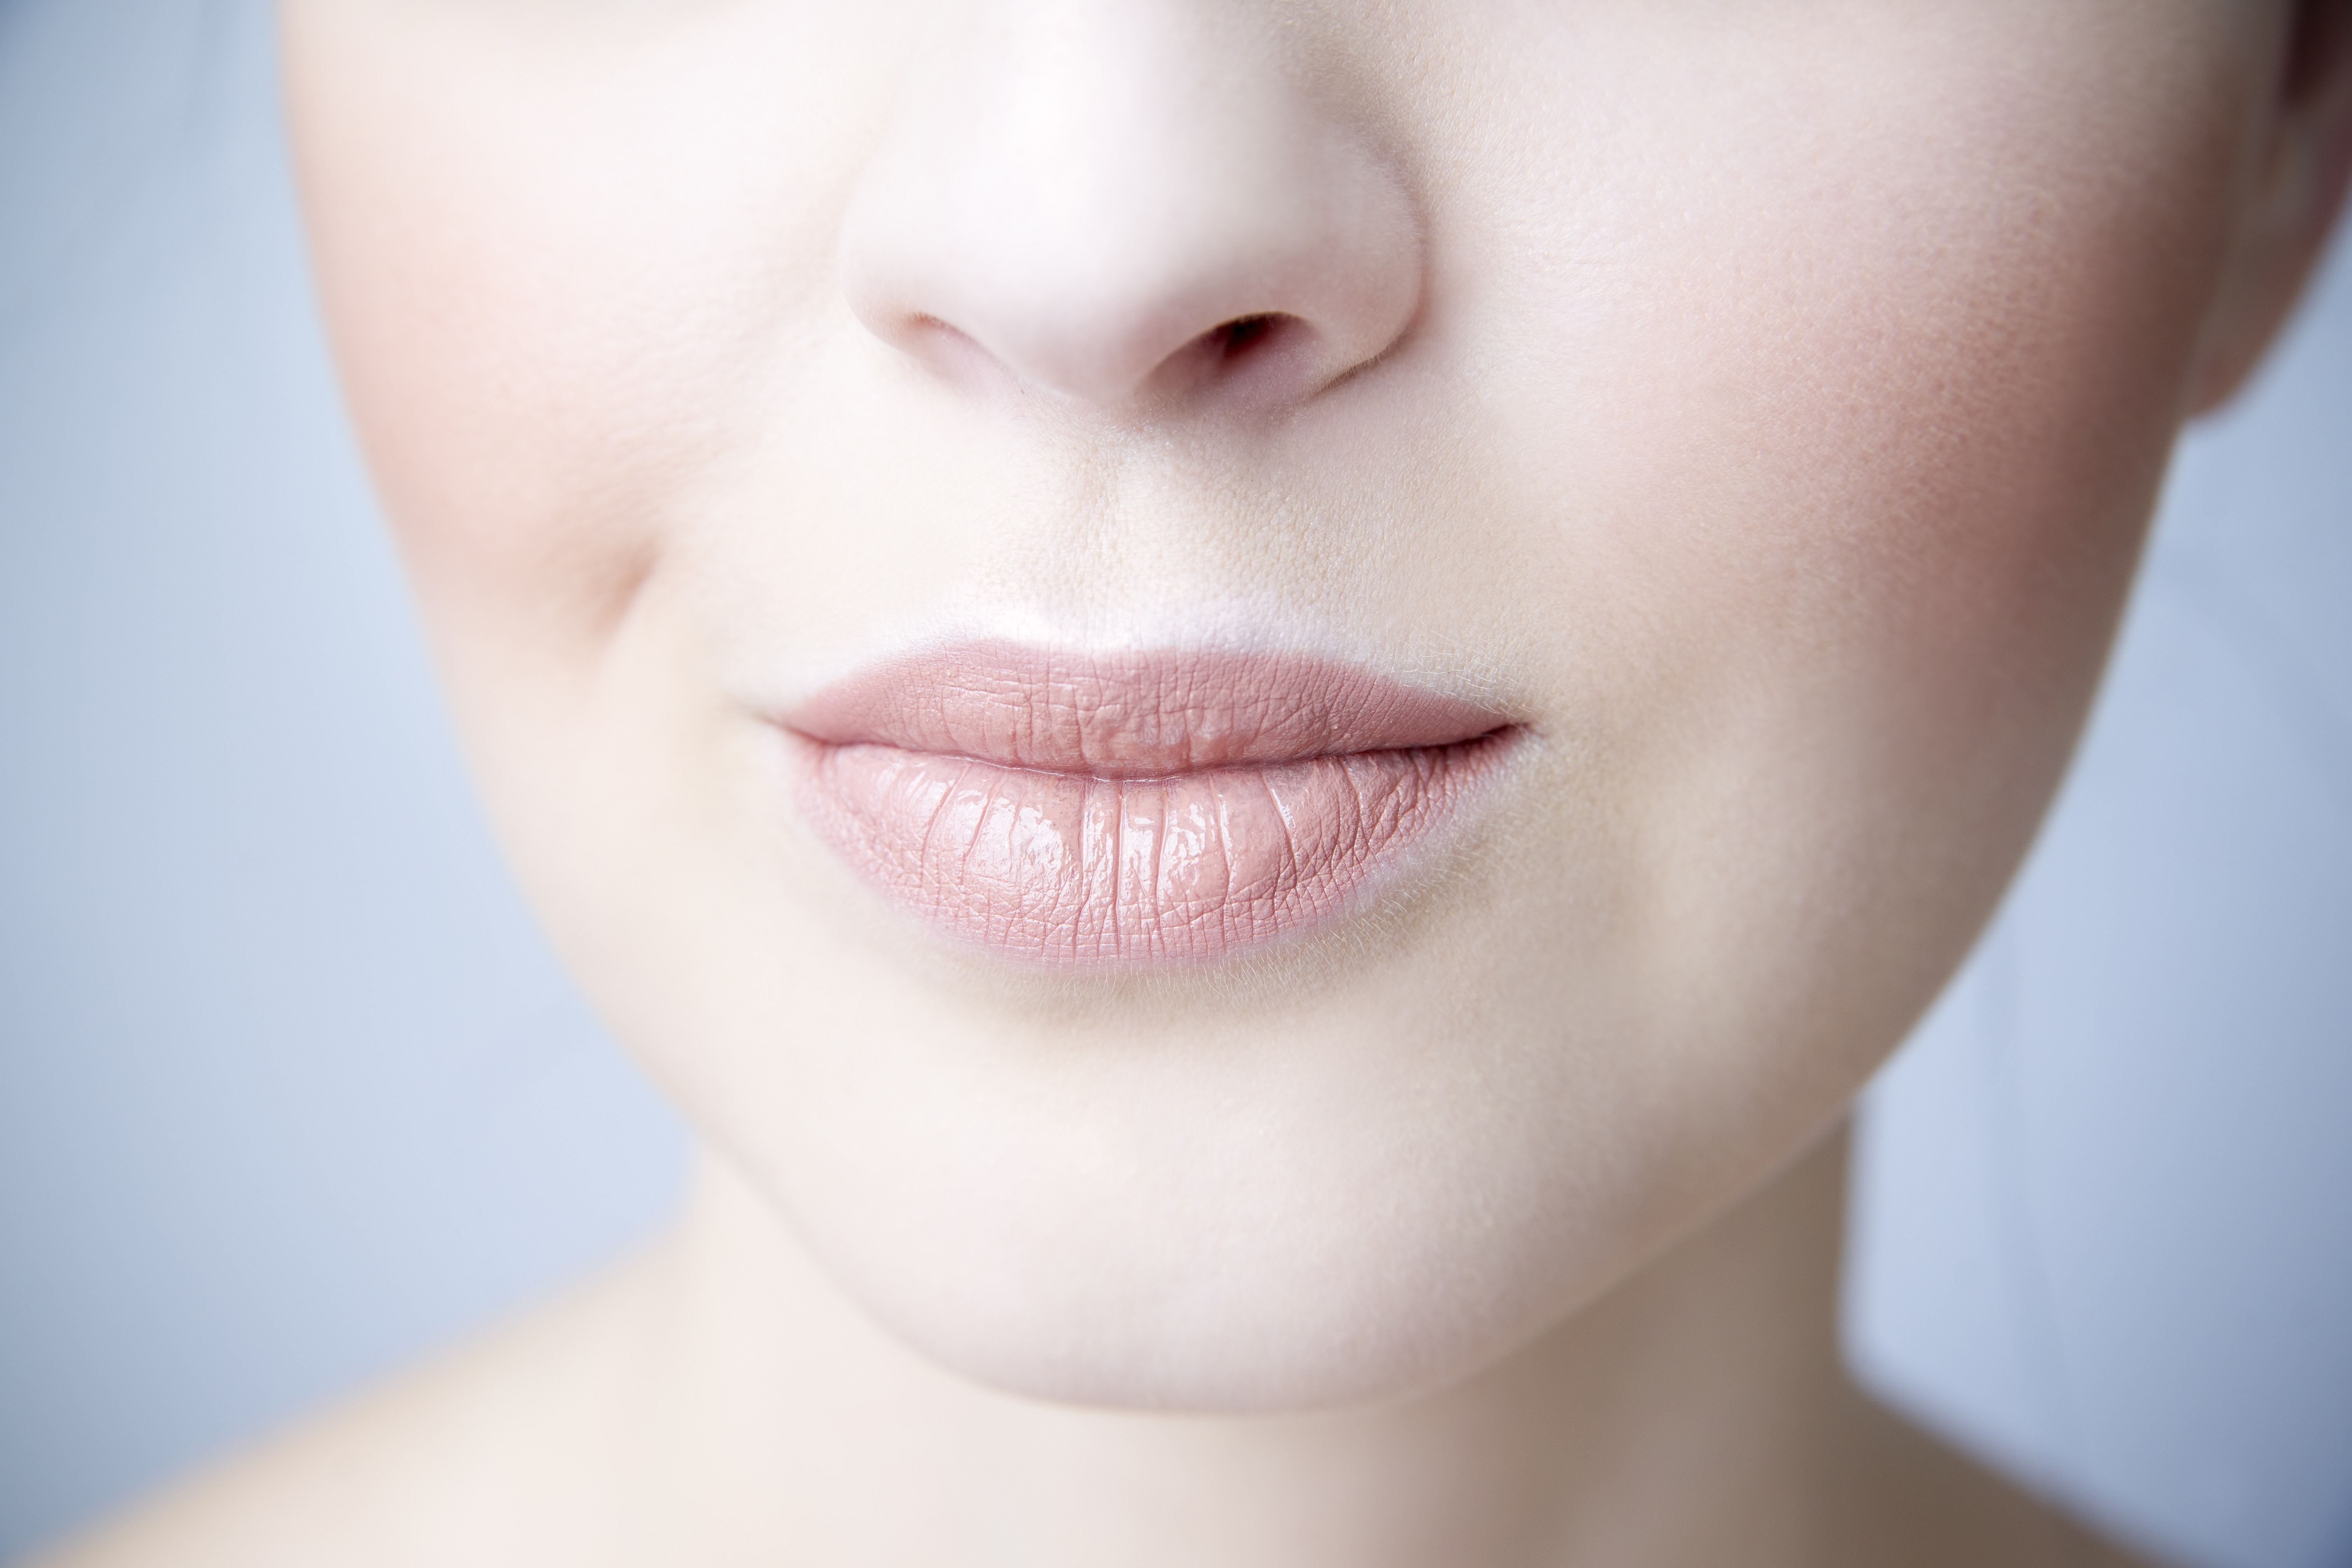 How to Get Rid of the Dimple in Your Chin | LEAFtv